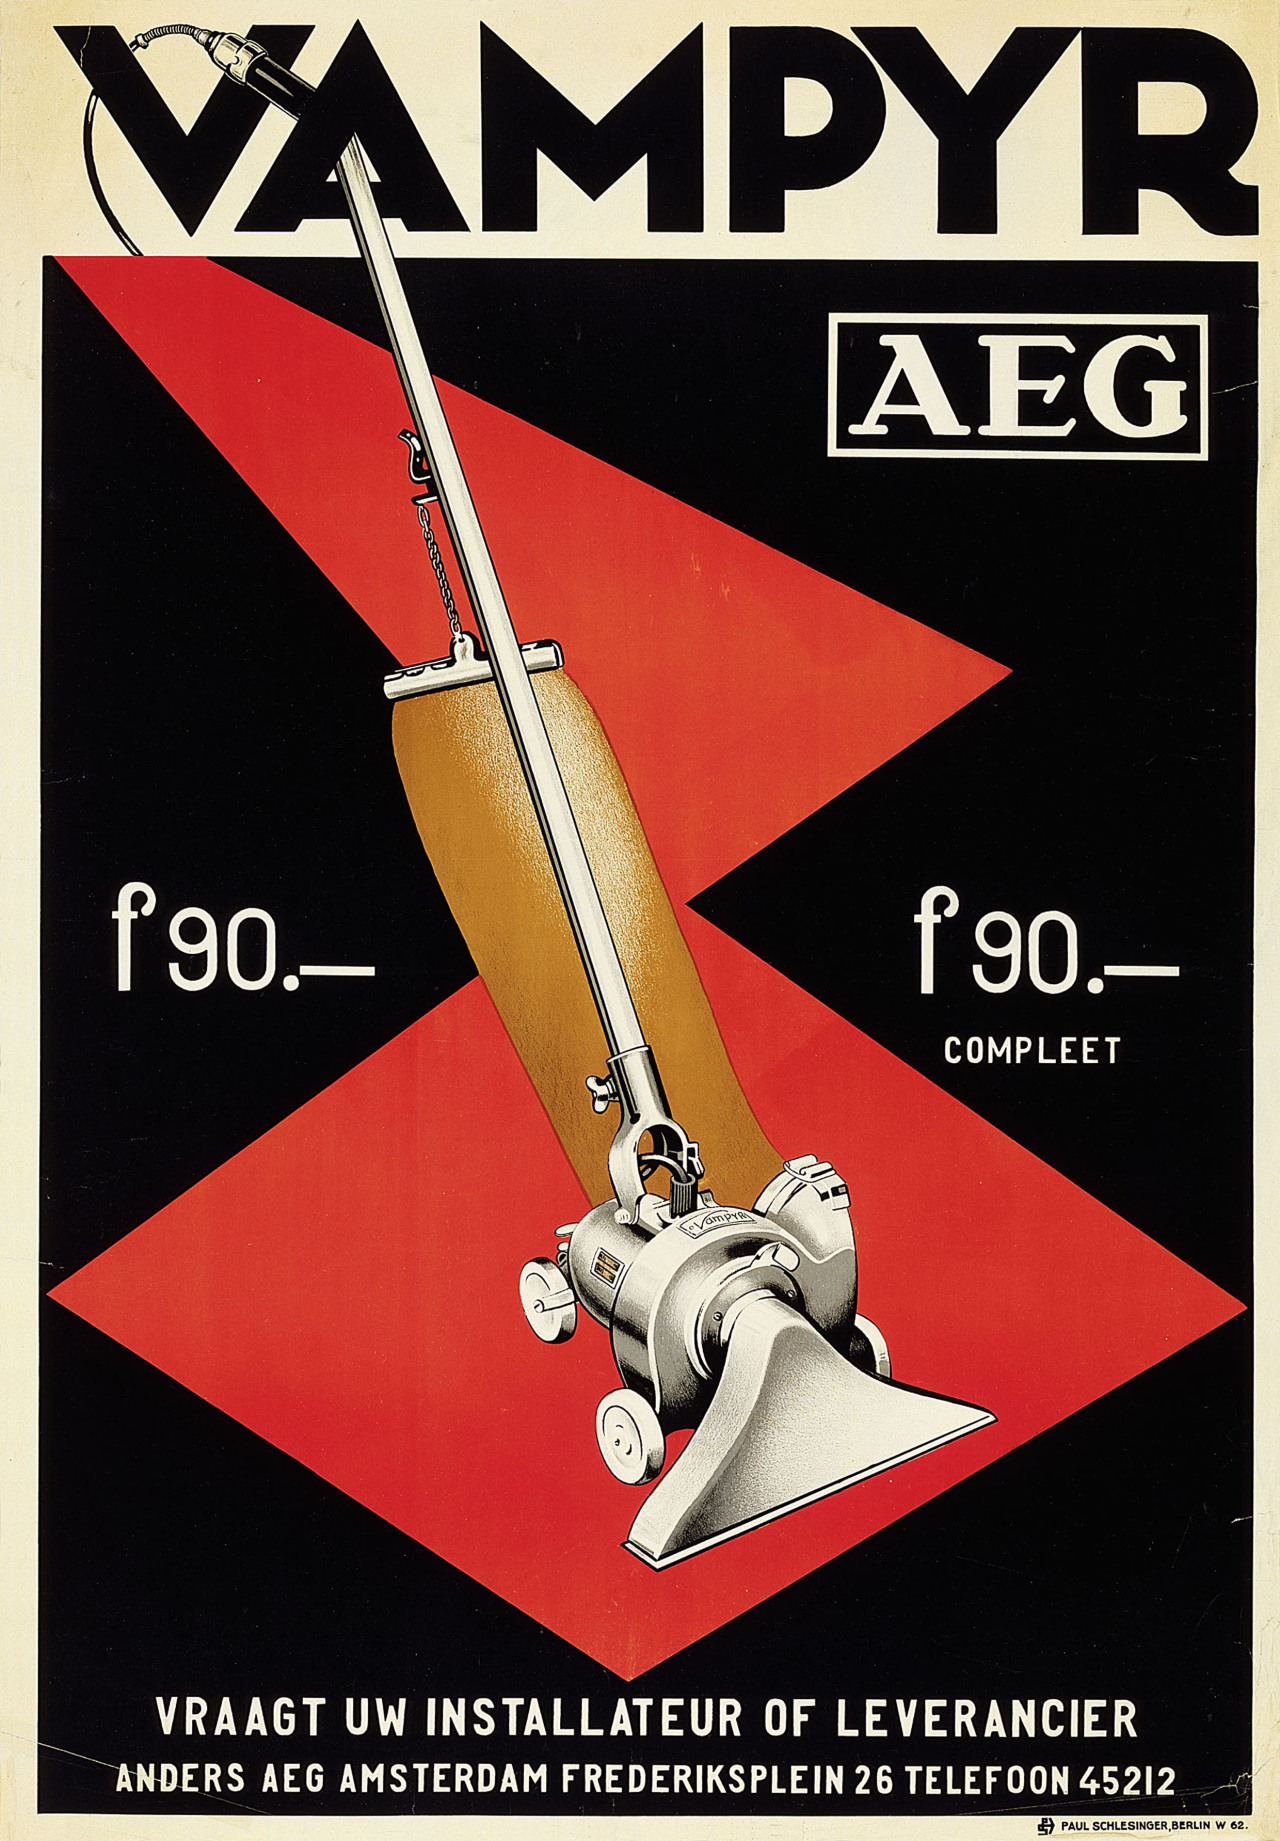 Panton Chairs Design Is Fine. — Aeg Poster For Vampyr Vacuum Cleaner